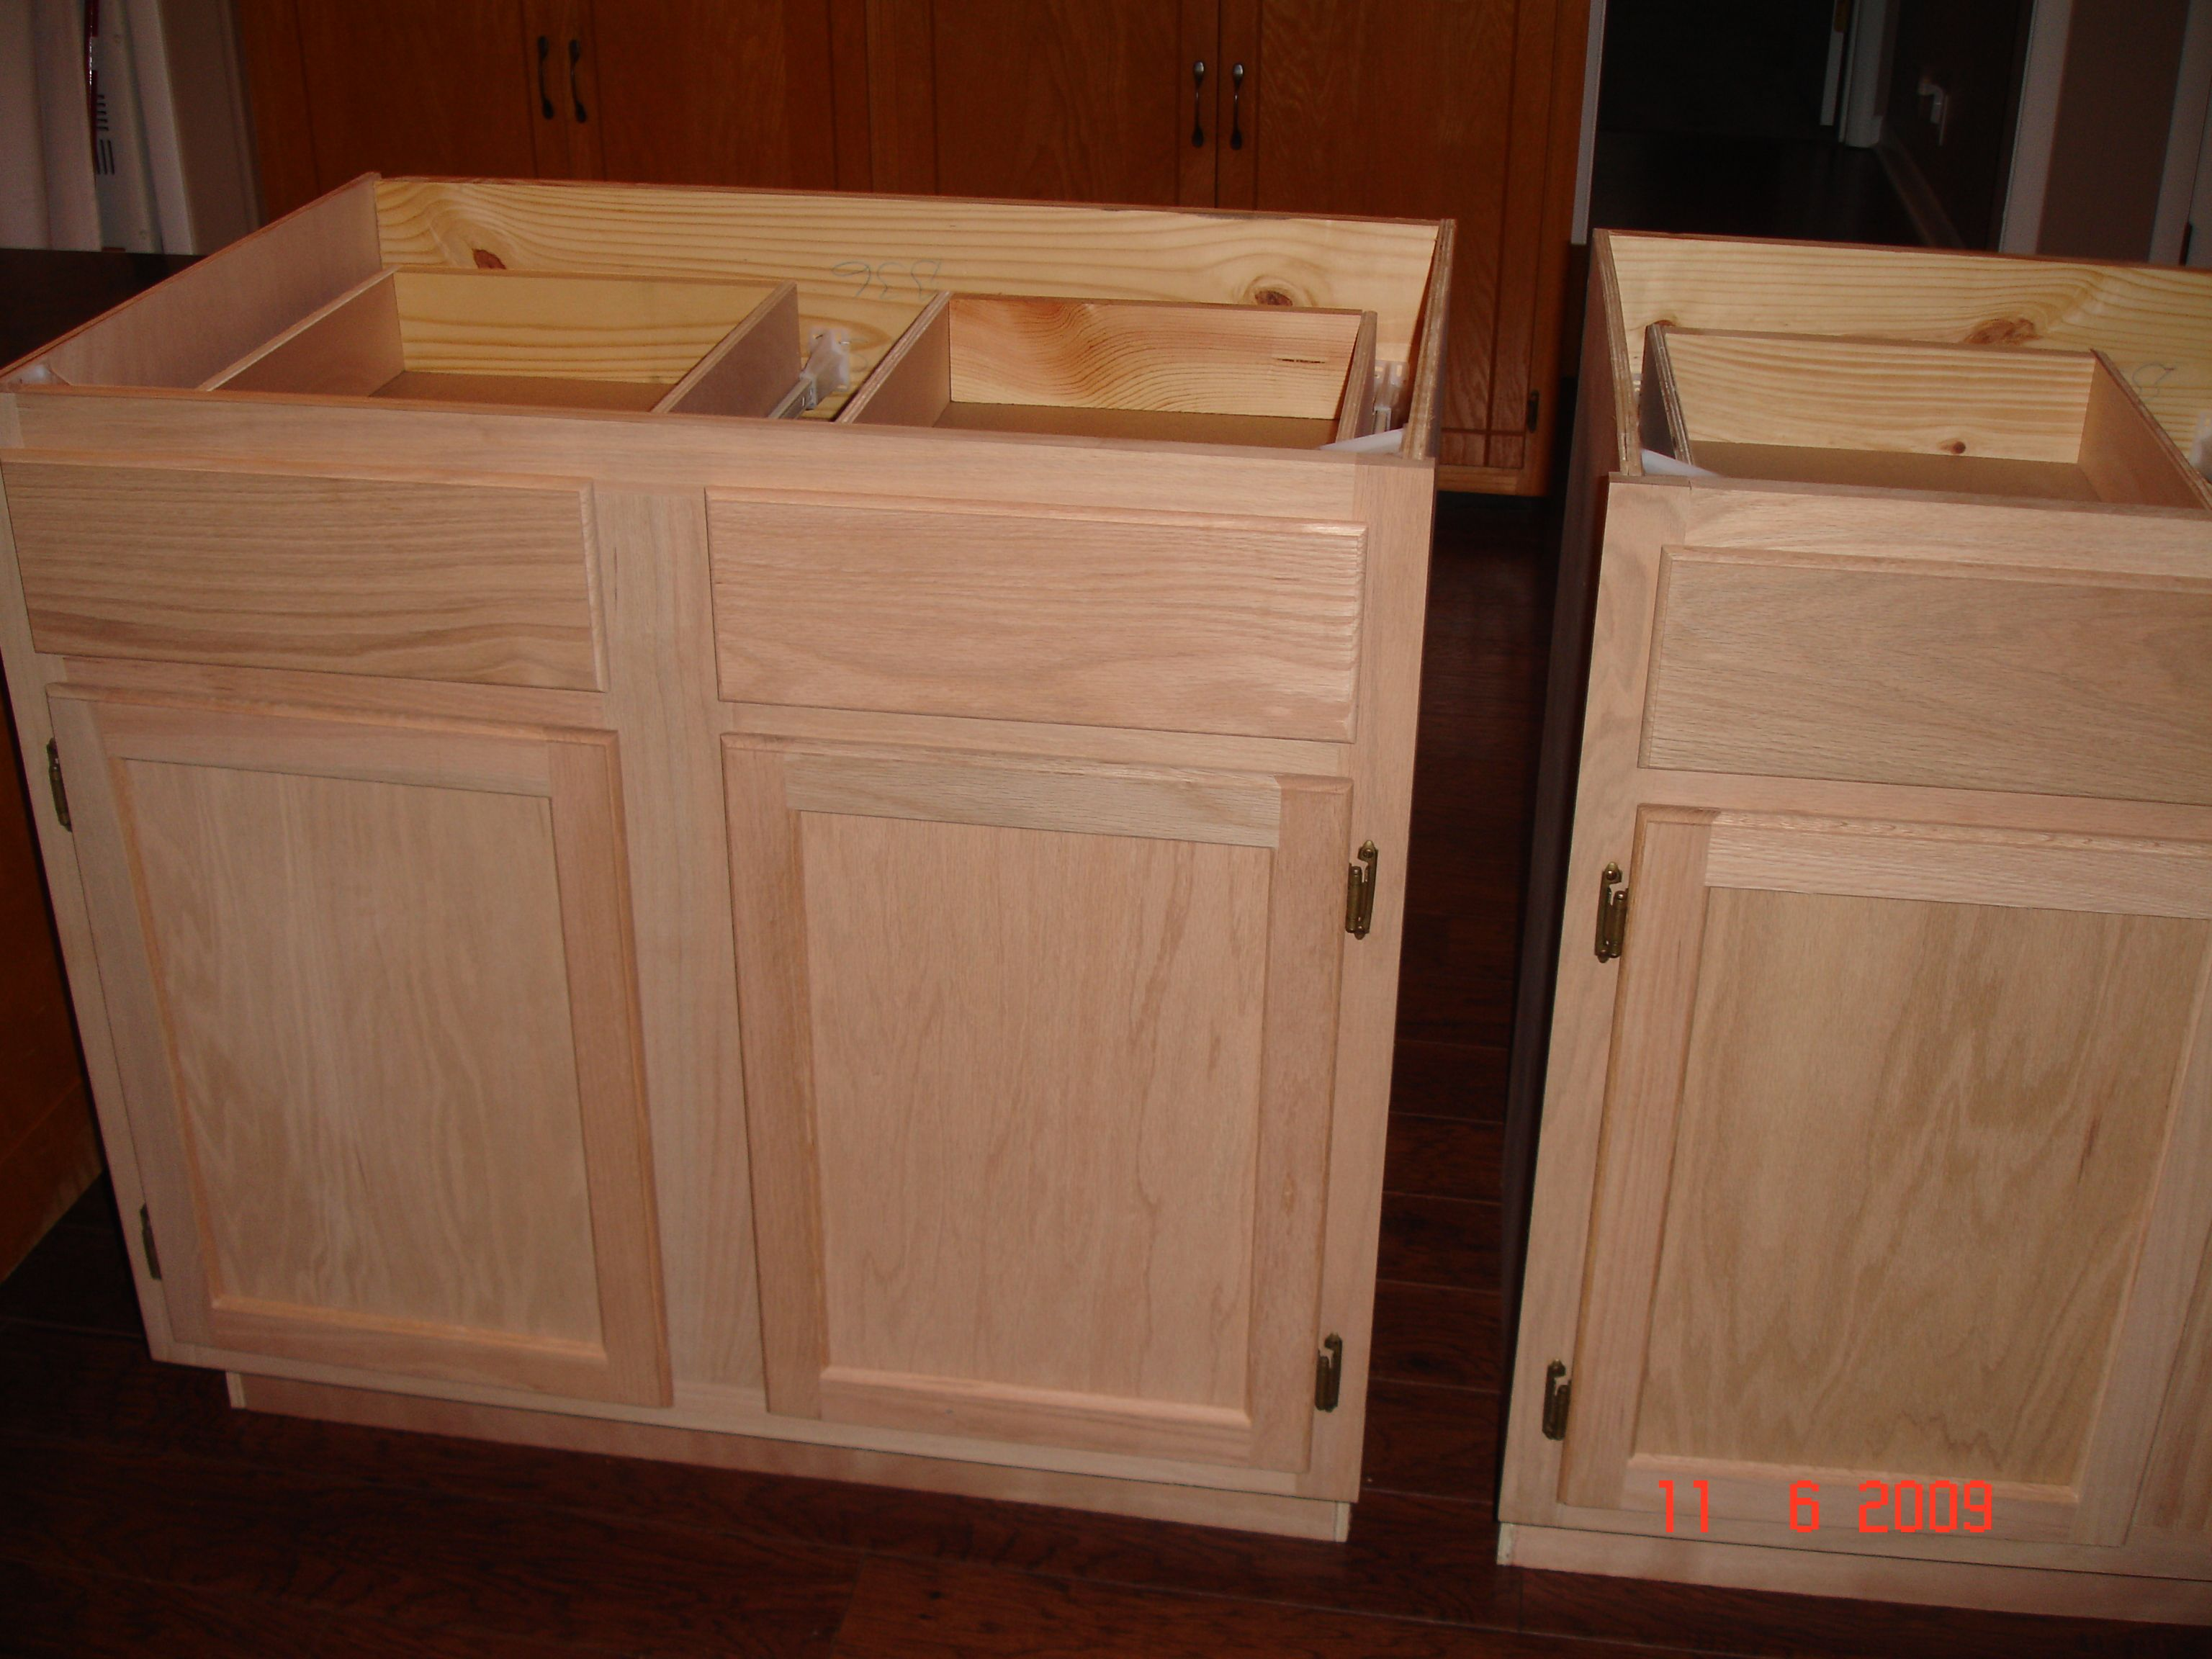 Kitchen Base Cabinets With Countertop Diy Kitchen Island Made By Hubby And Me From Unfinished